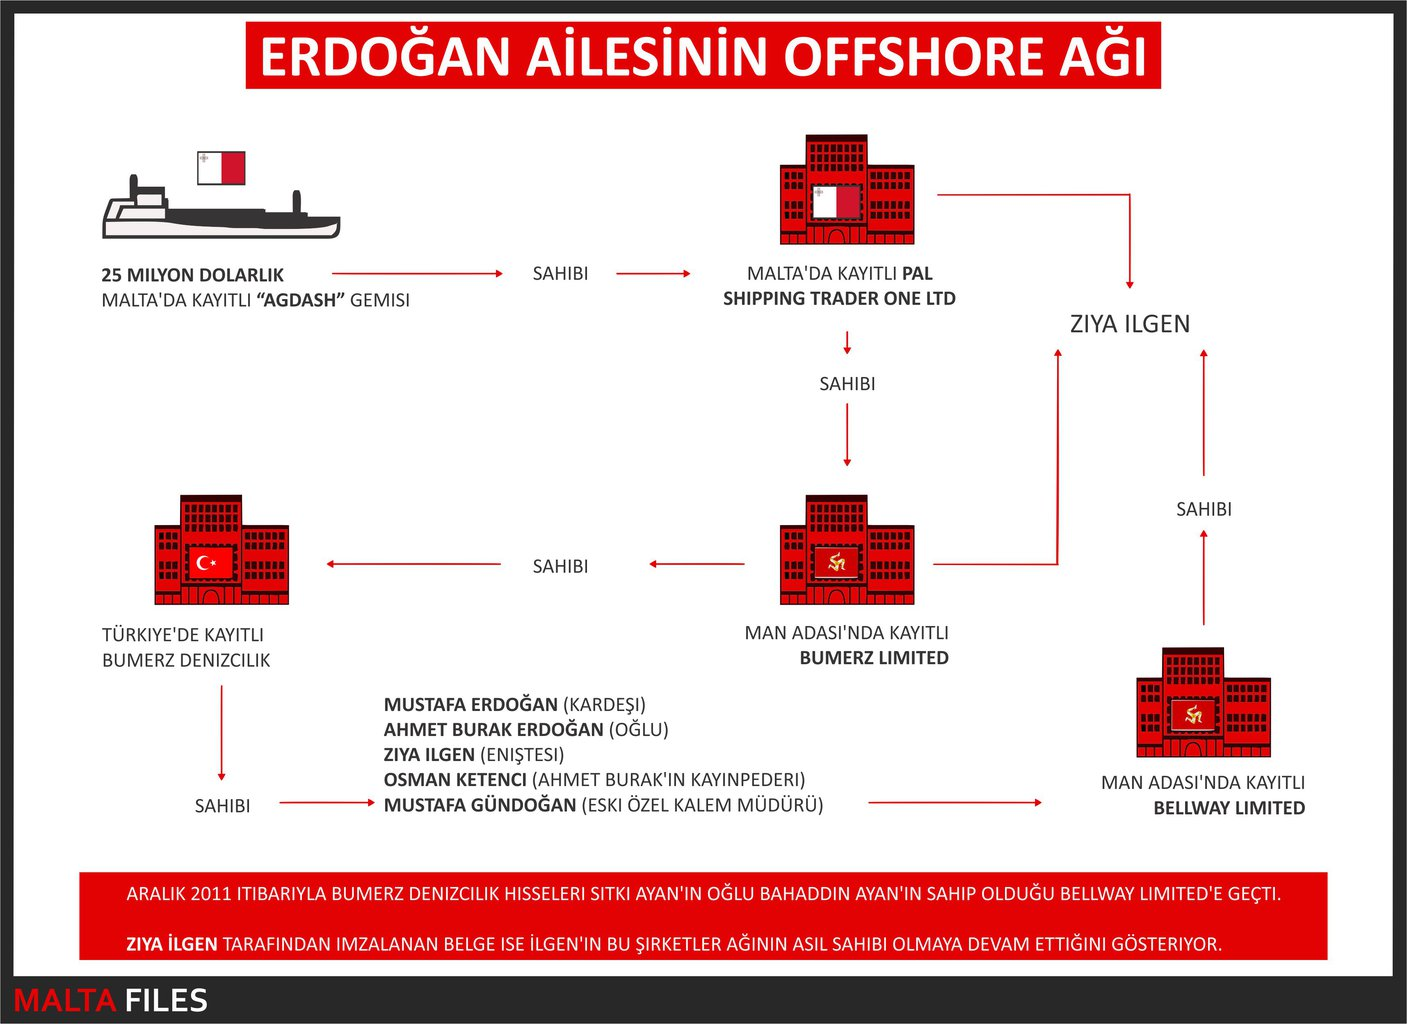 infographic erdogan family offshore turkish.jpg